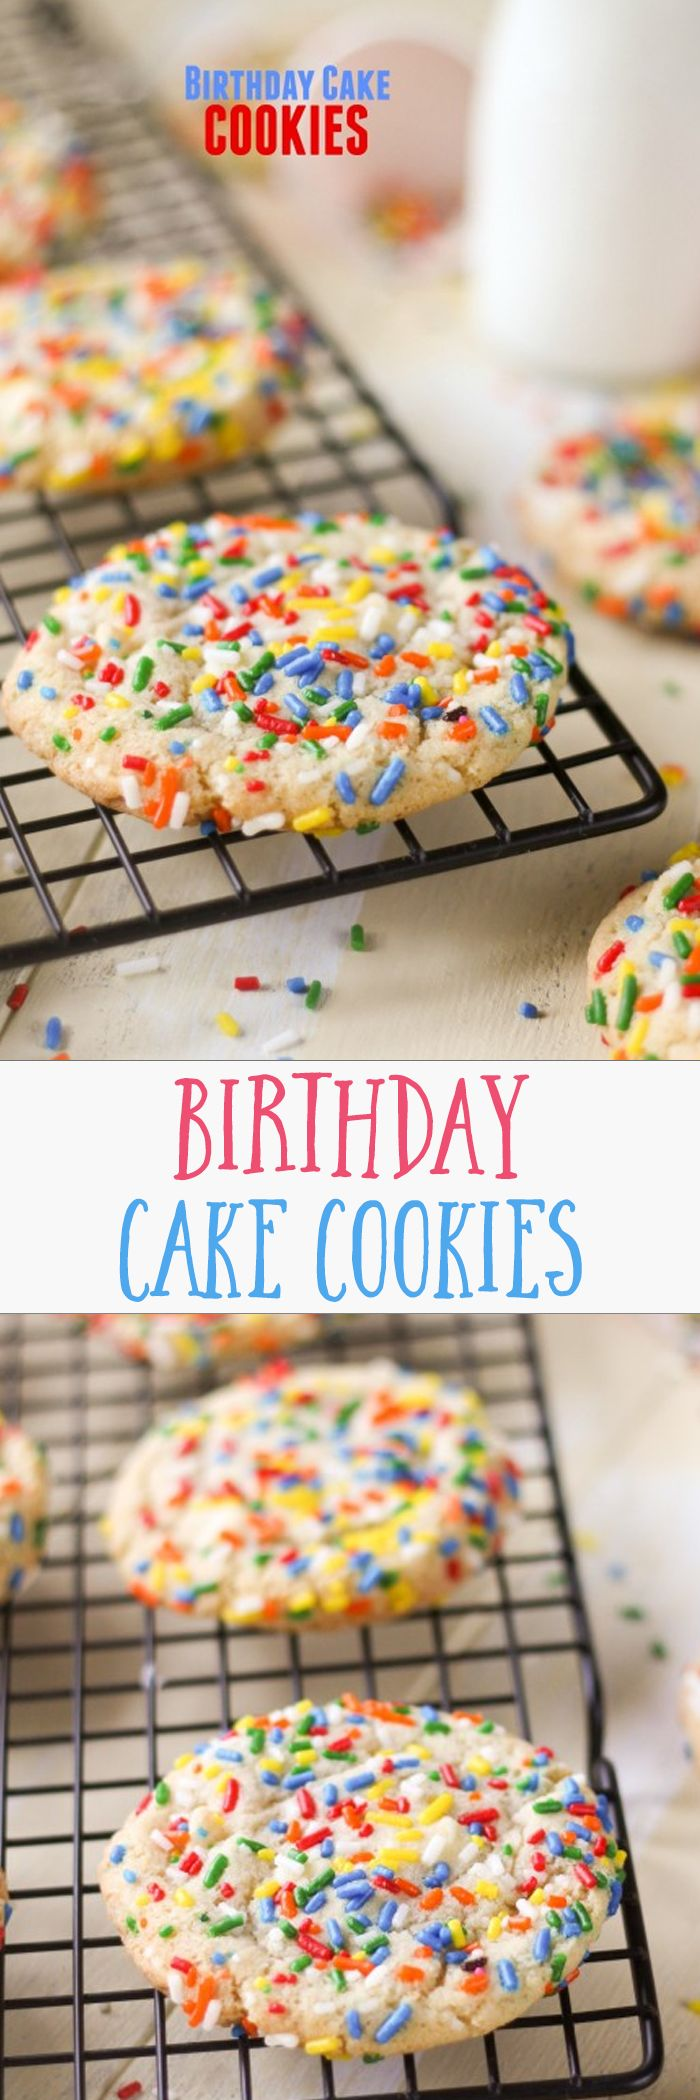 Birthday Cake Cookies I Duplicated One Of Our Favorites From Great American Cookie Company